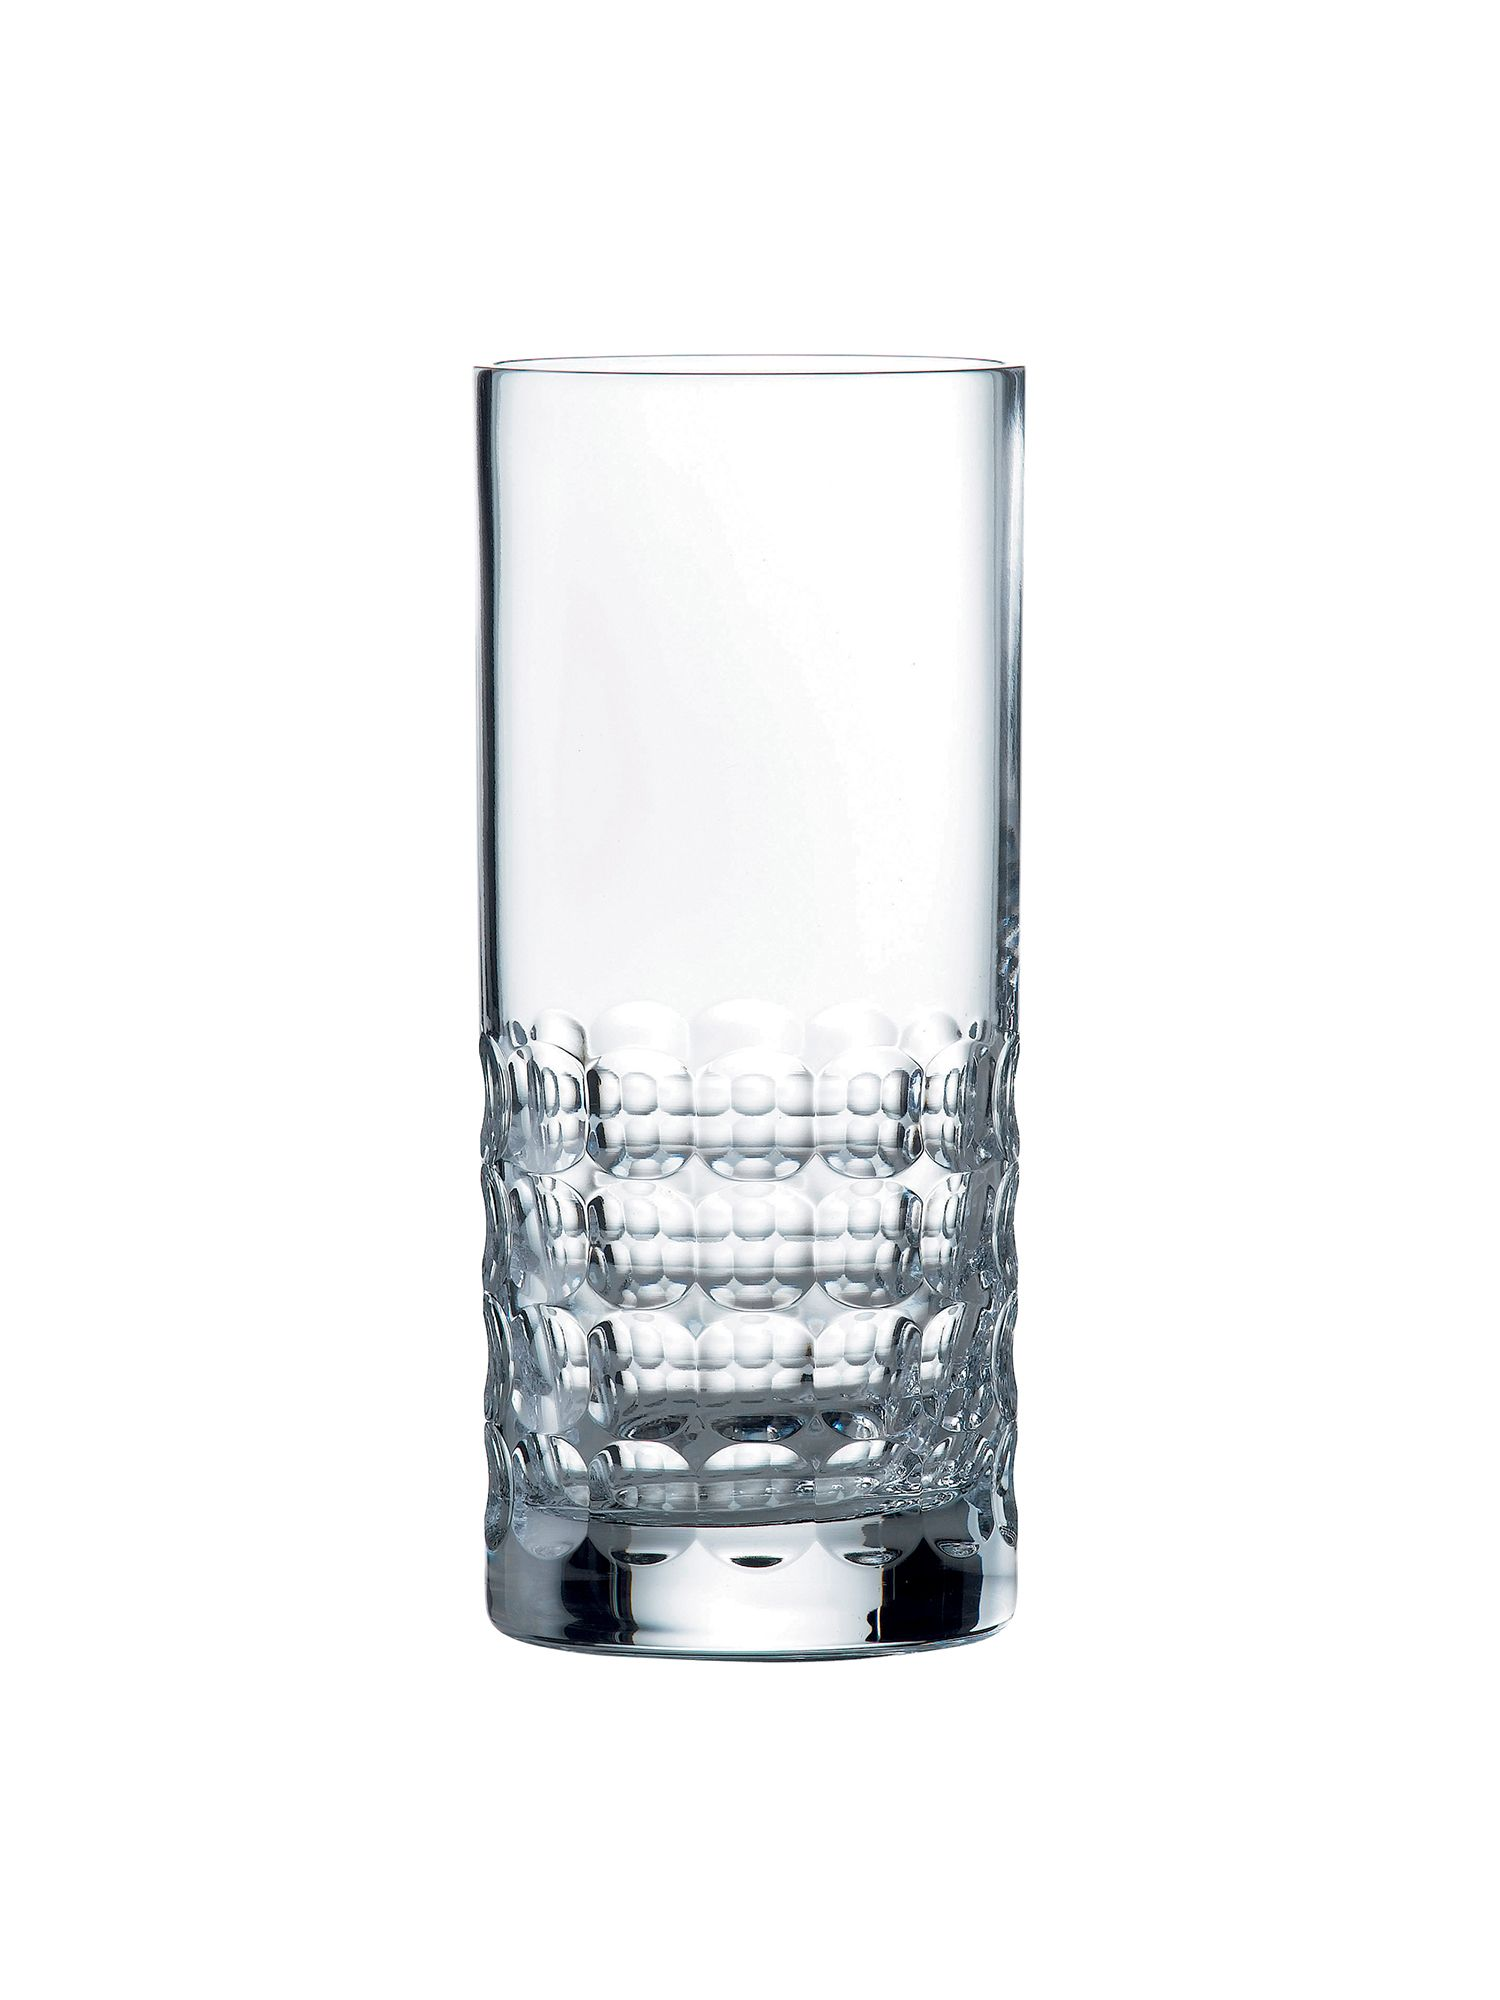 Richmond crystal box of 4 hi-ball glasses